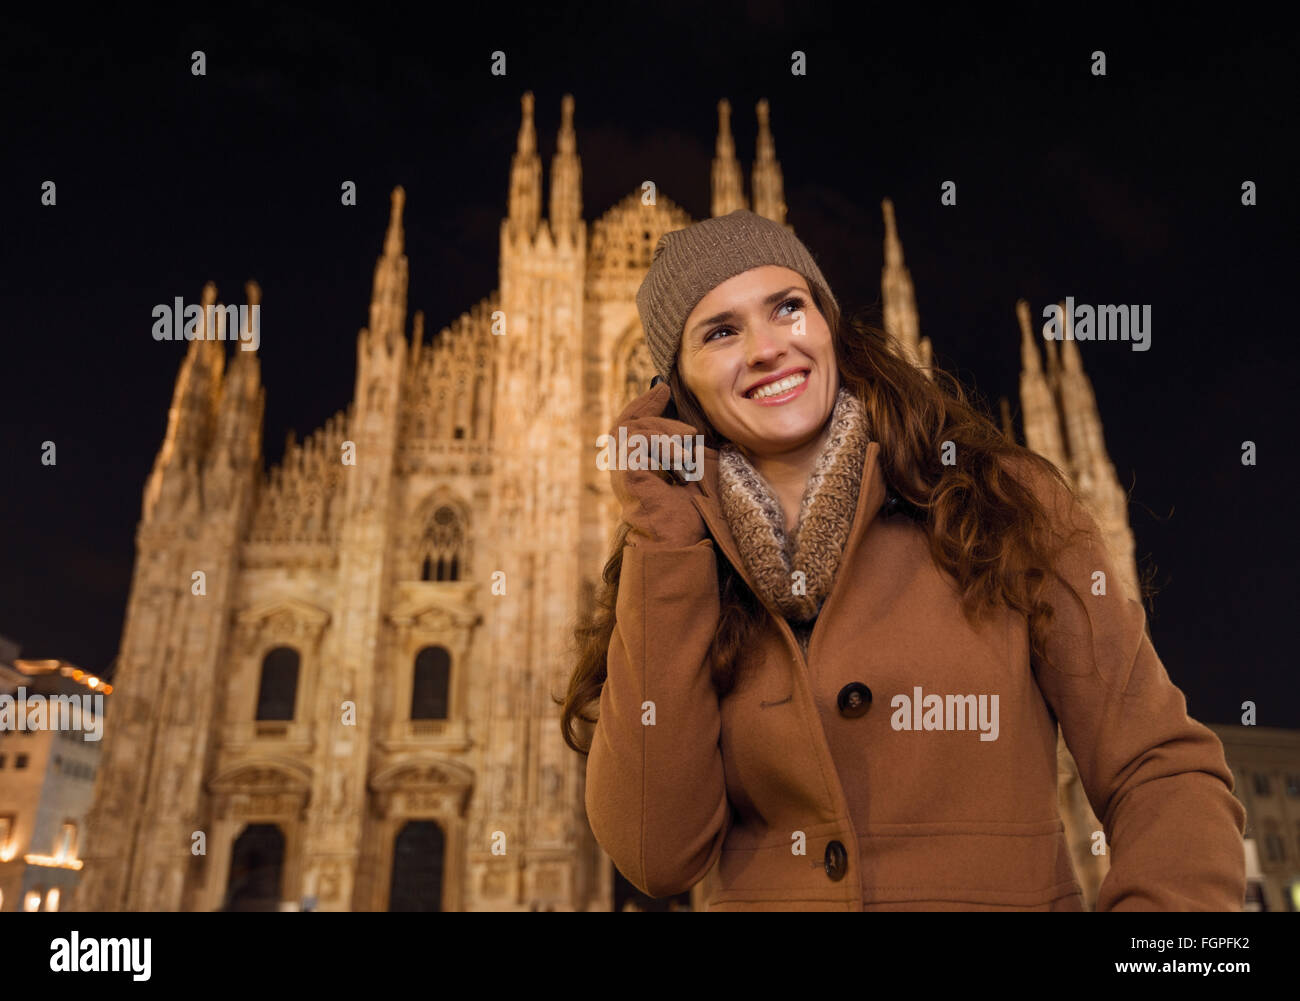 It is time to dress up and take a night tour in ultra-luxurious fashion expert - Milan, Italy. Happy young woman - Stock Image